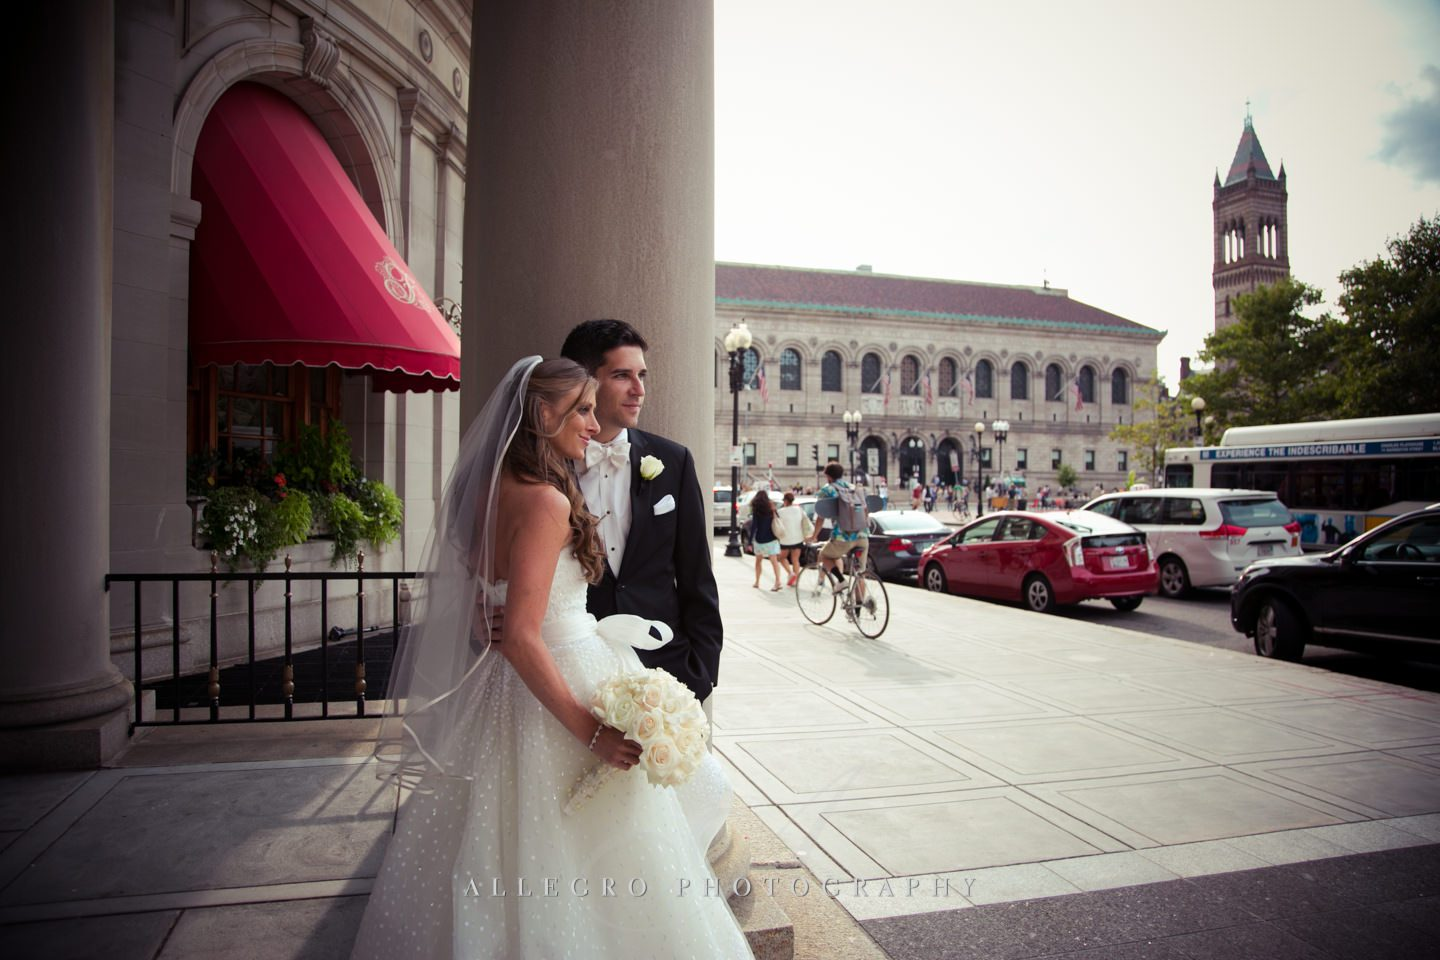 bride and groom in the city- photo by Allegro Photography